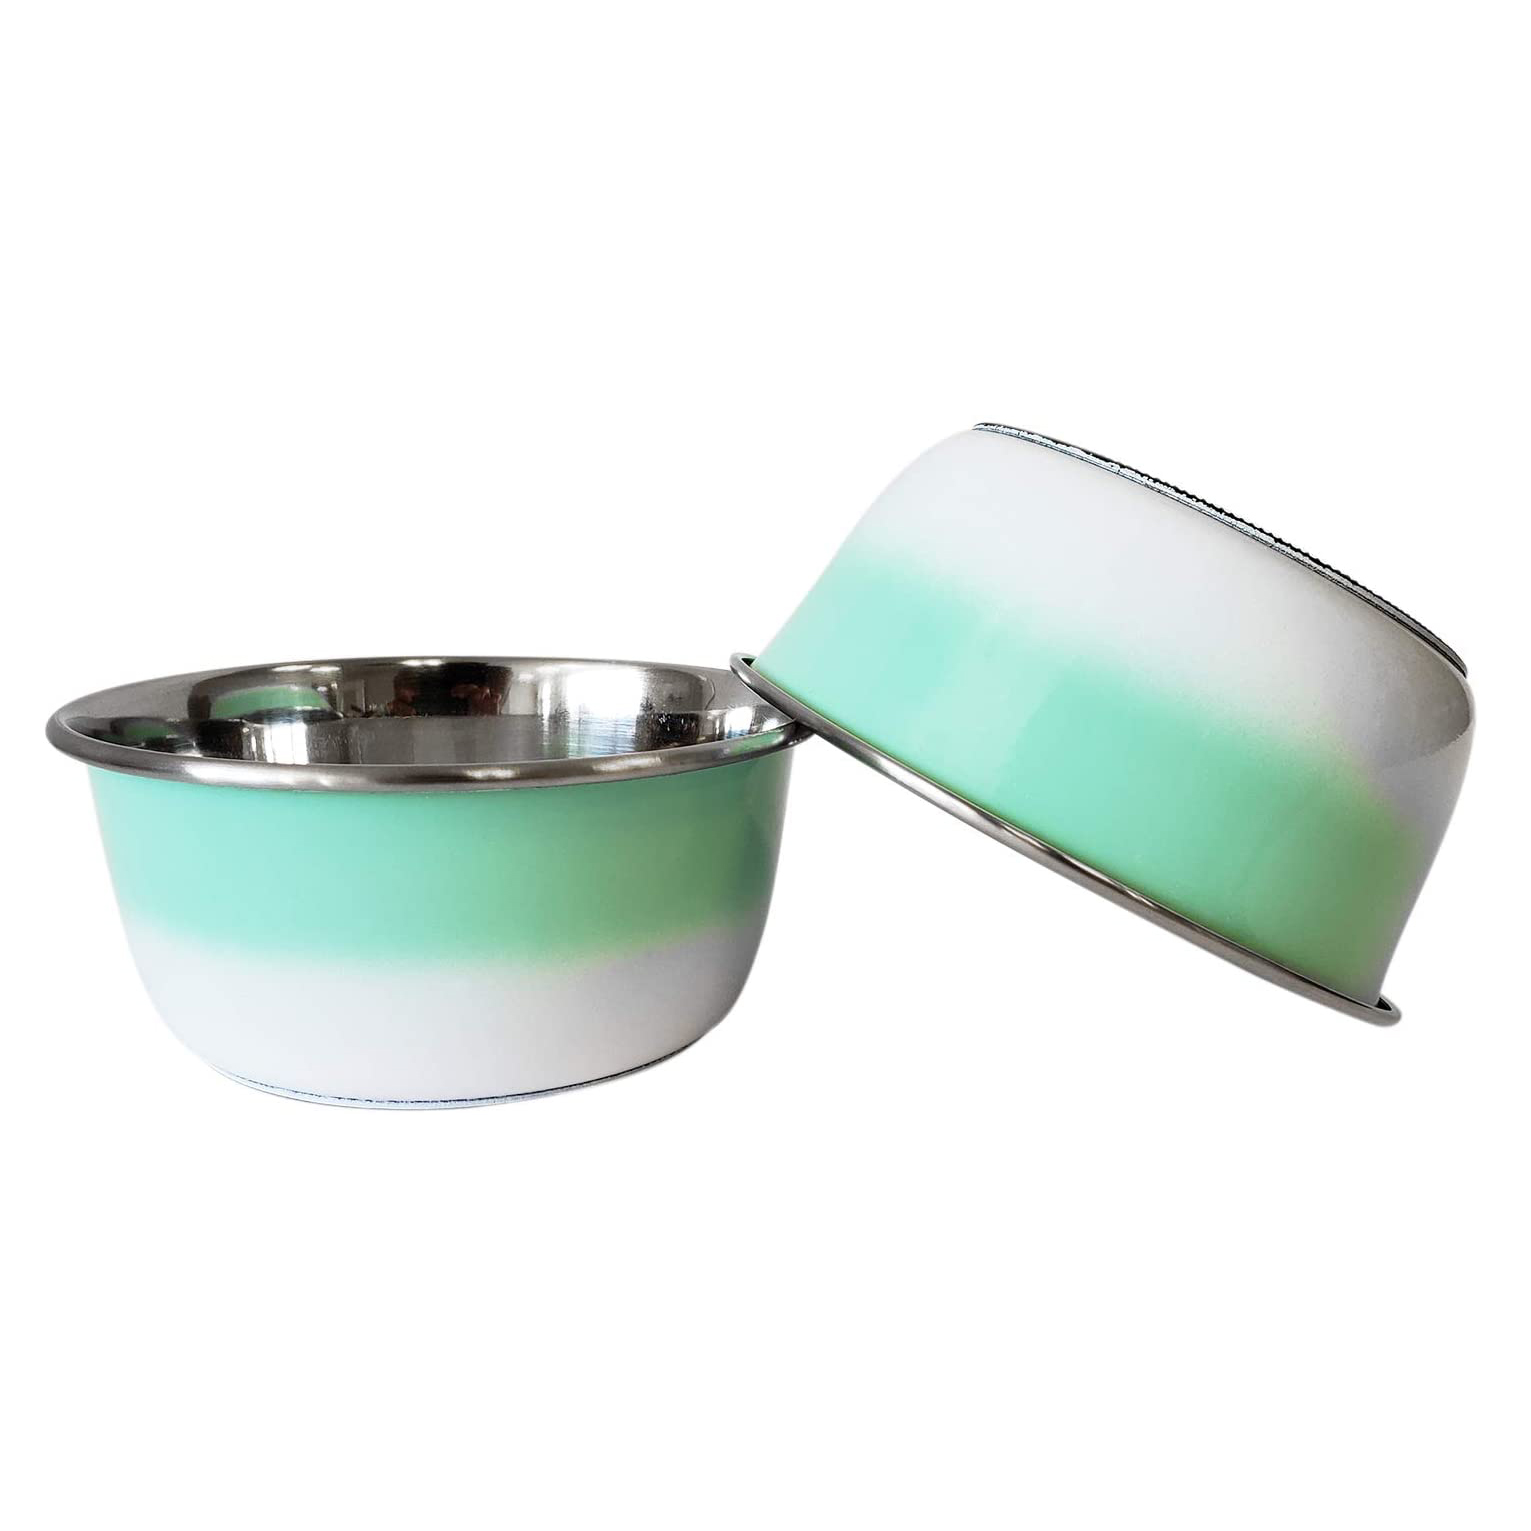 american-pet-supplies-set-of-2-deep-colored-stainless-steel-dog-bowls